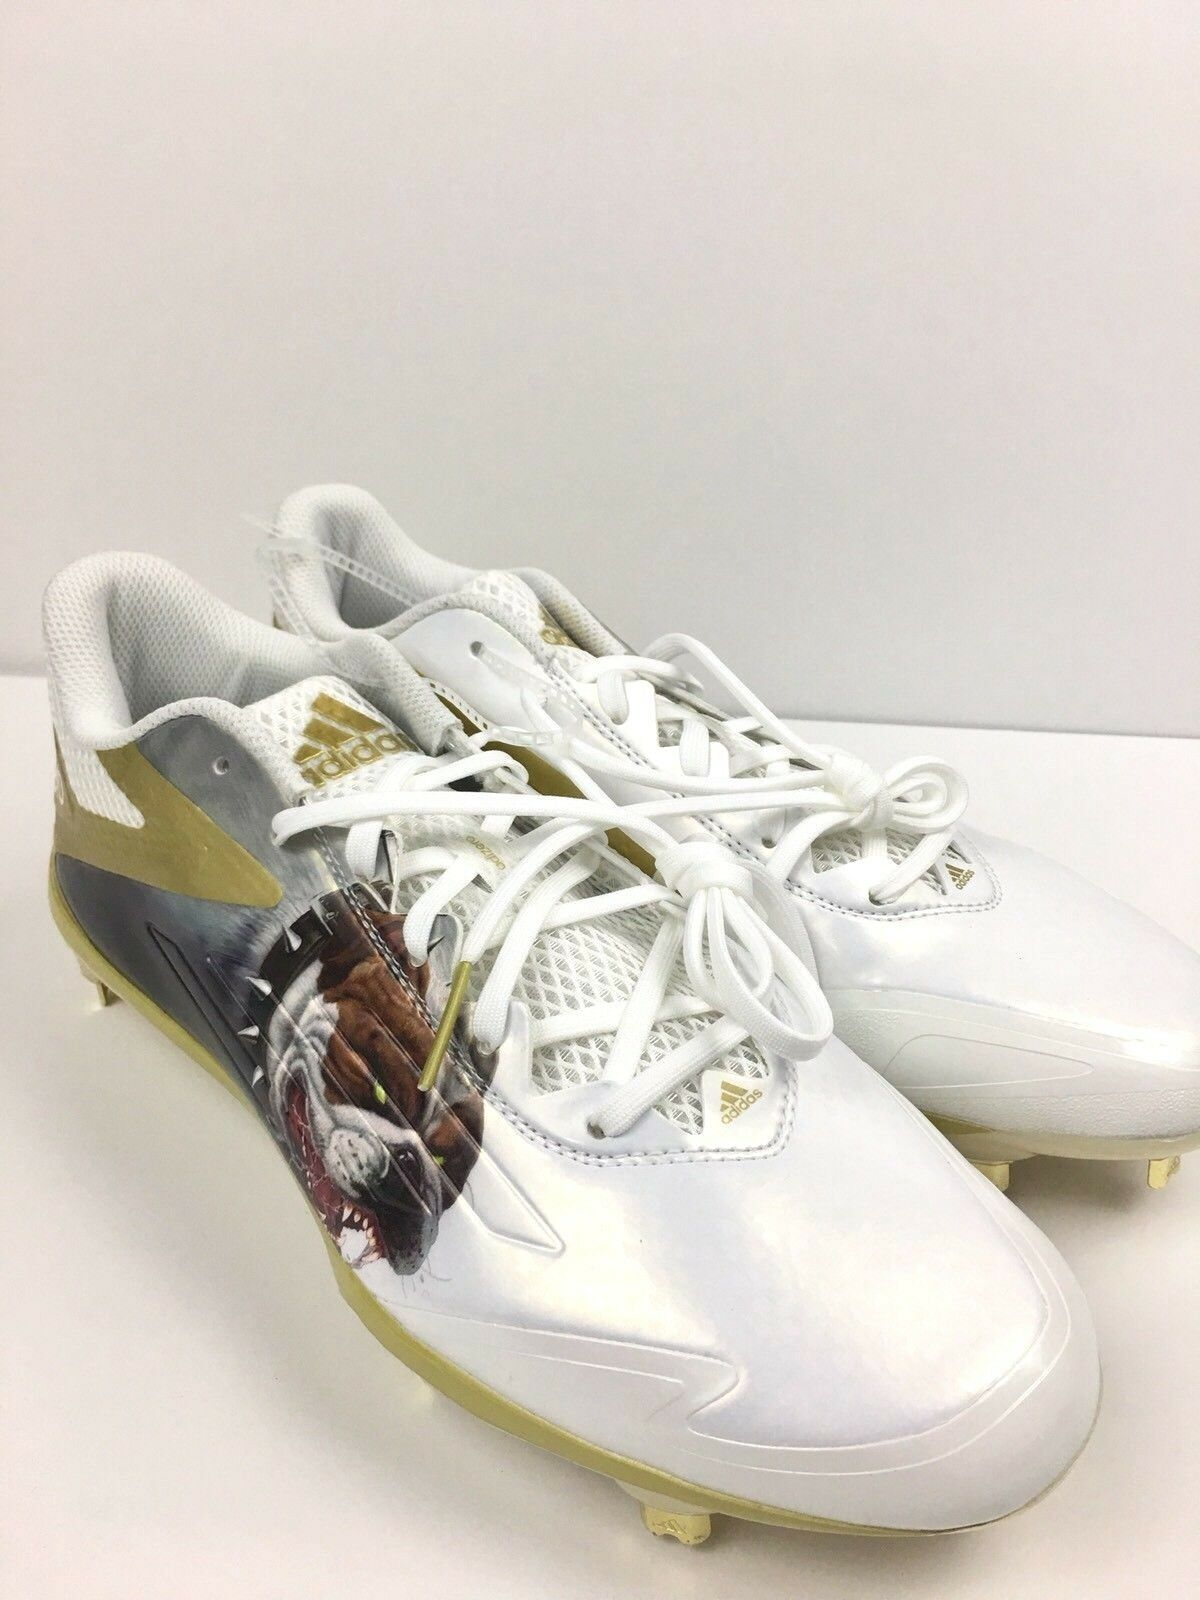 Adidas AfterBurner Gold Uncaged Bulldog Baseball Cleats AQ7132 Mens Price reduction